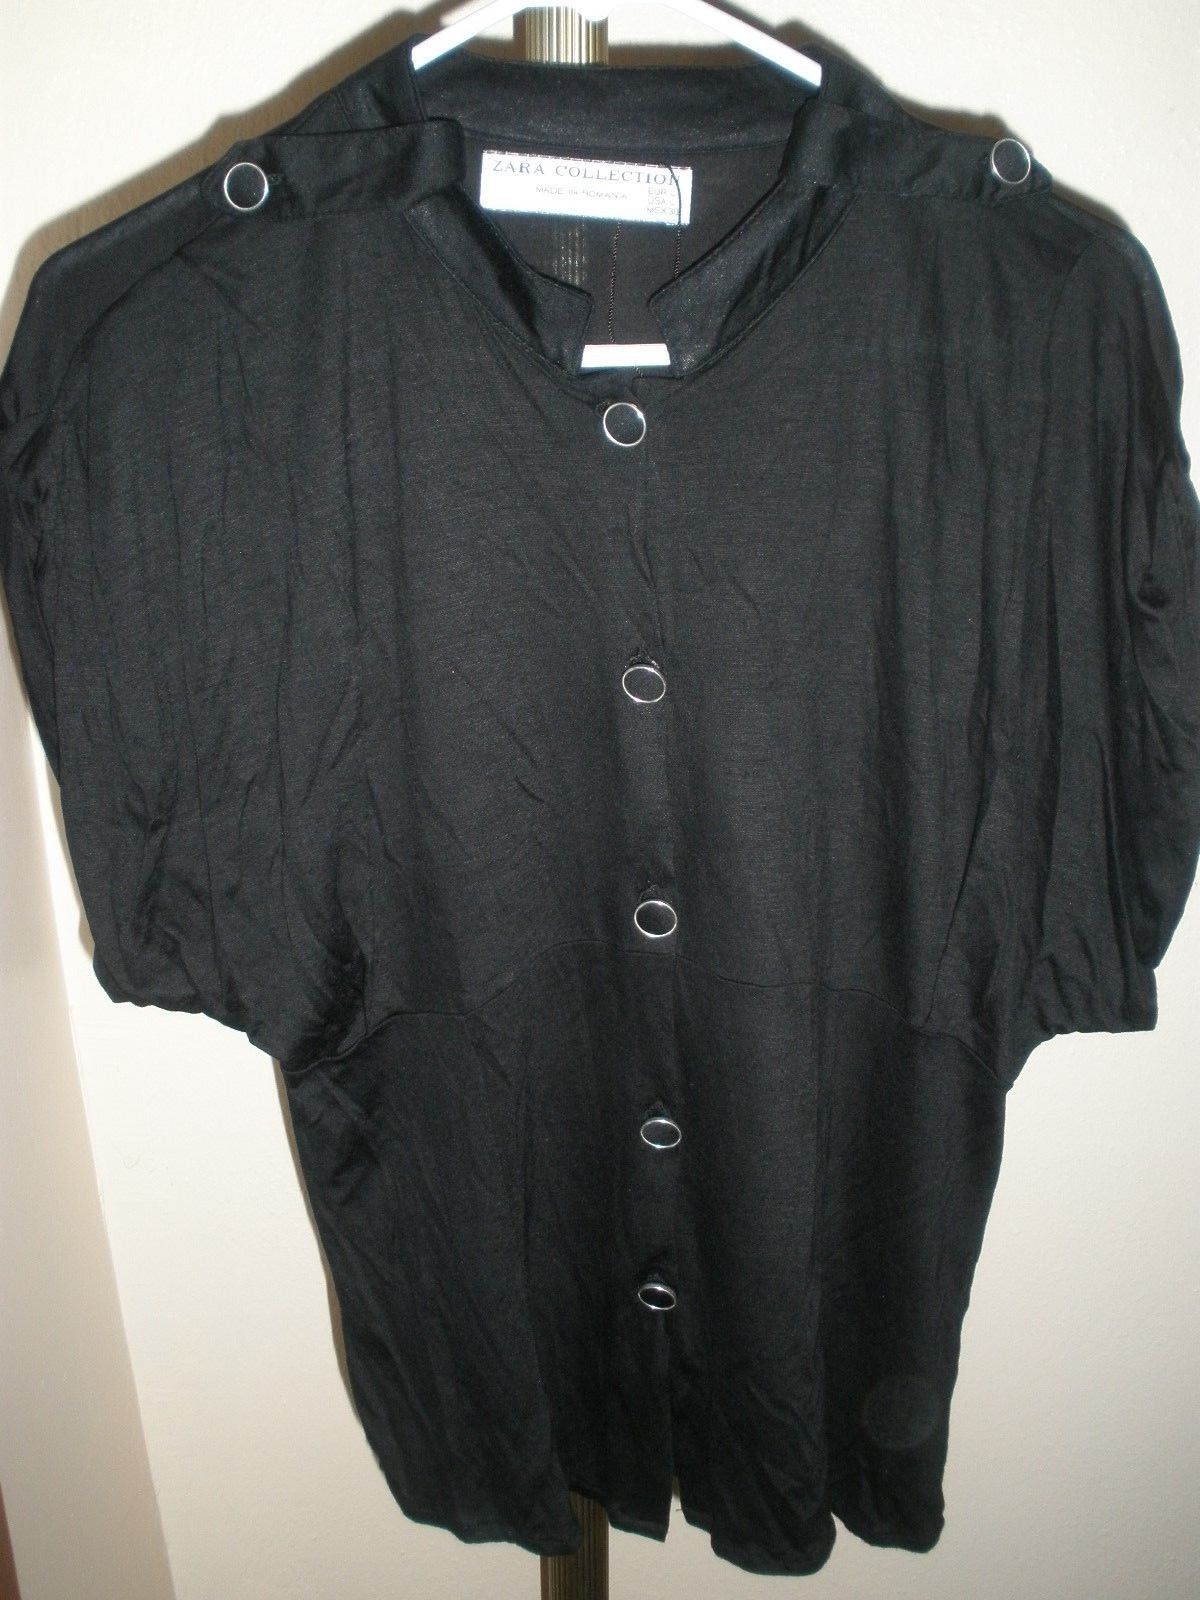 e86c933d04f01b S l1600. S l1600. Previous. NWOT WOMEN S ZARA COLLECTION MADE IN ROMANIA VISCOSE  BLACK S S TOP SZ LARGE